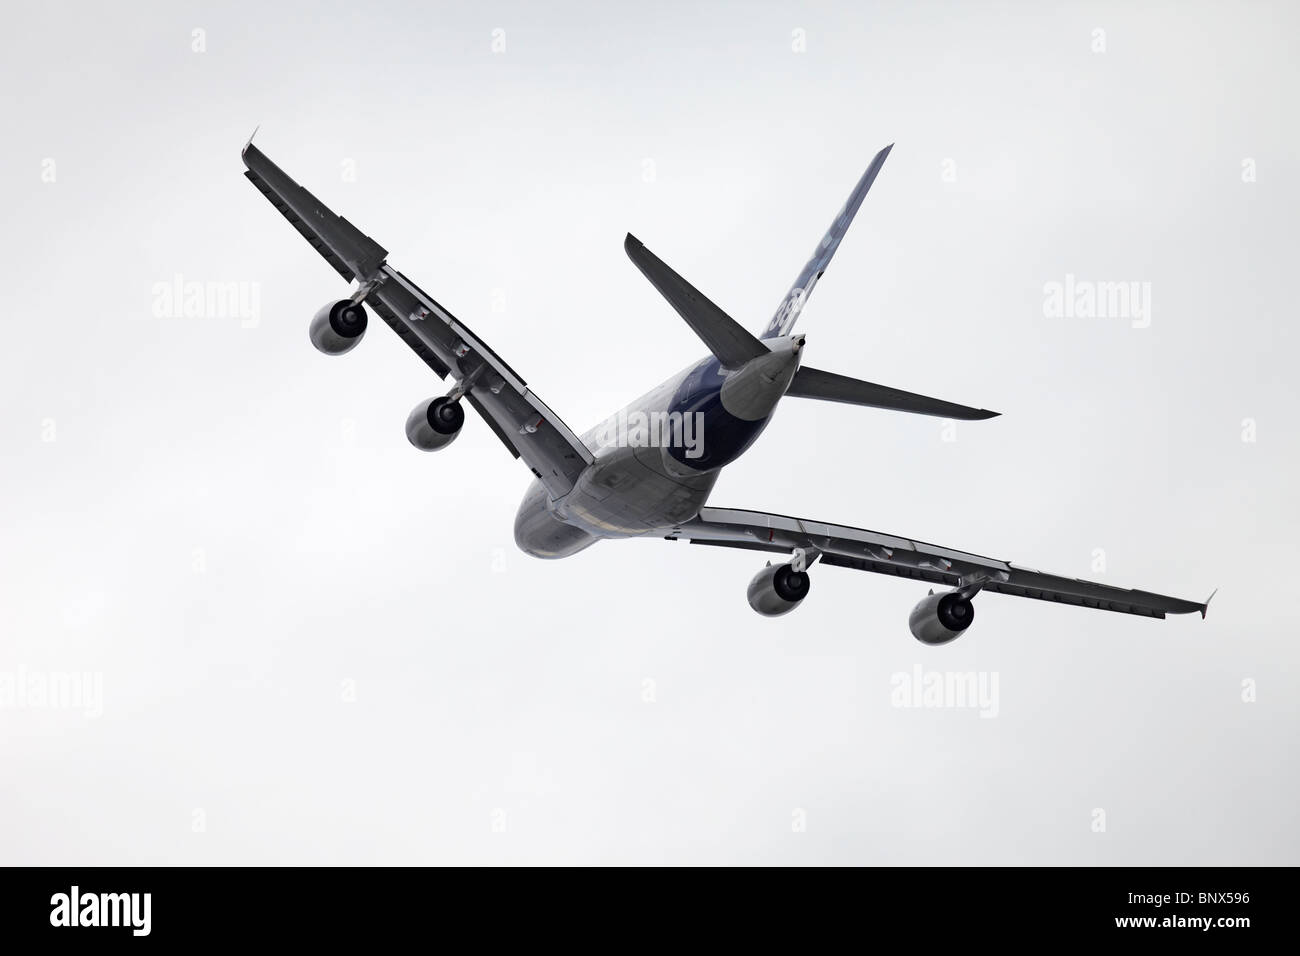 Farnborough Airbus industries A380 below - Stock Image